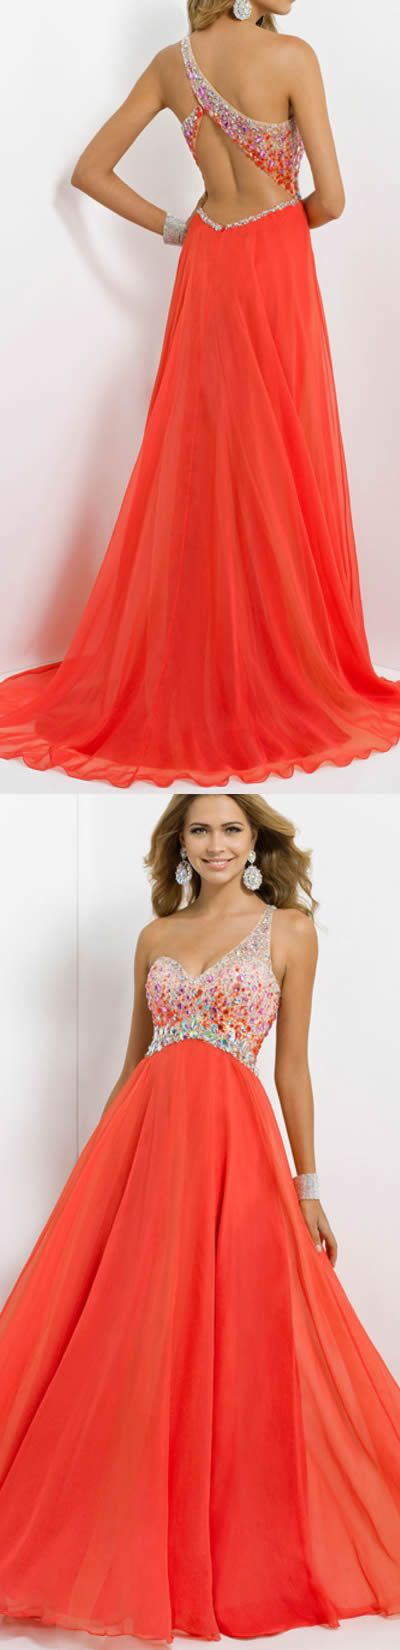 Orange/Red Empire Floor-length Chiffon Prom Dresses